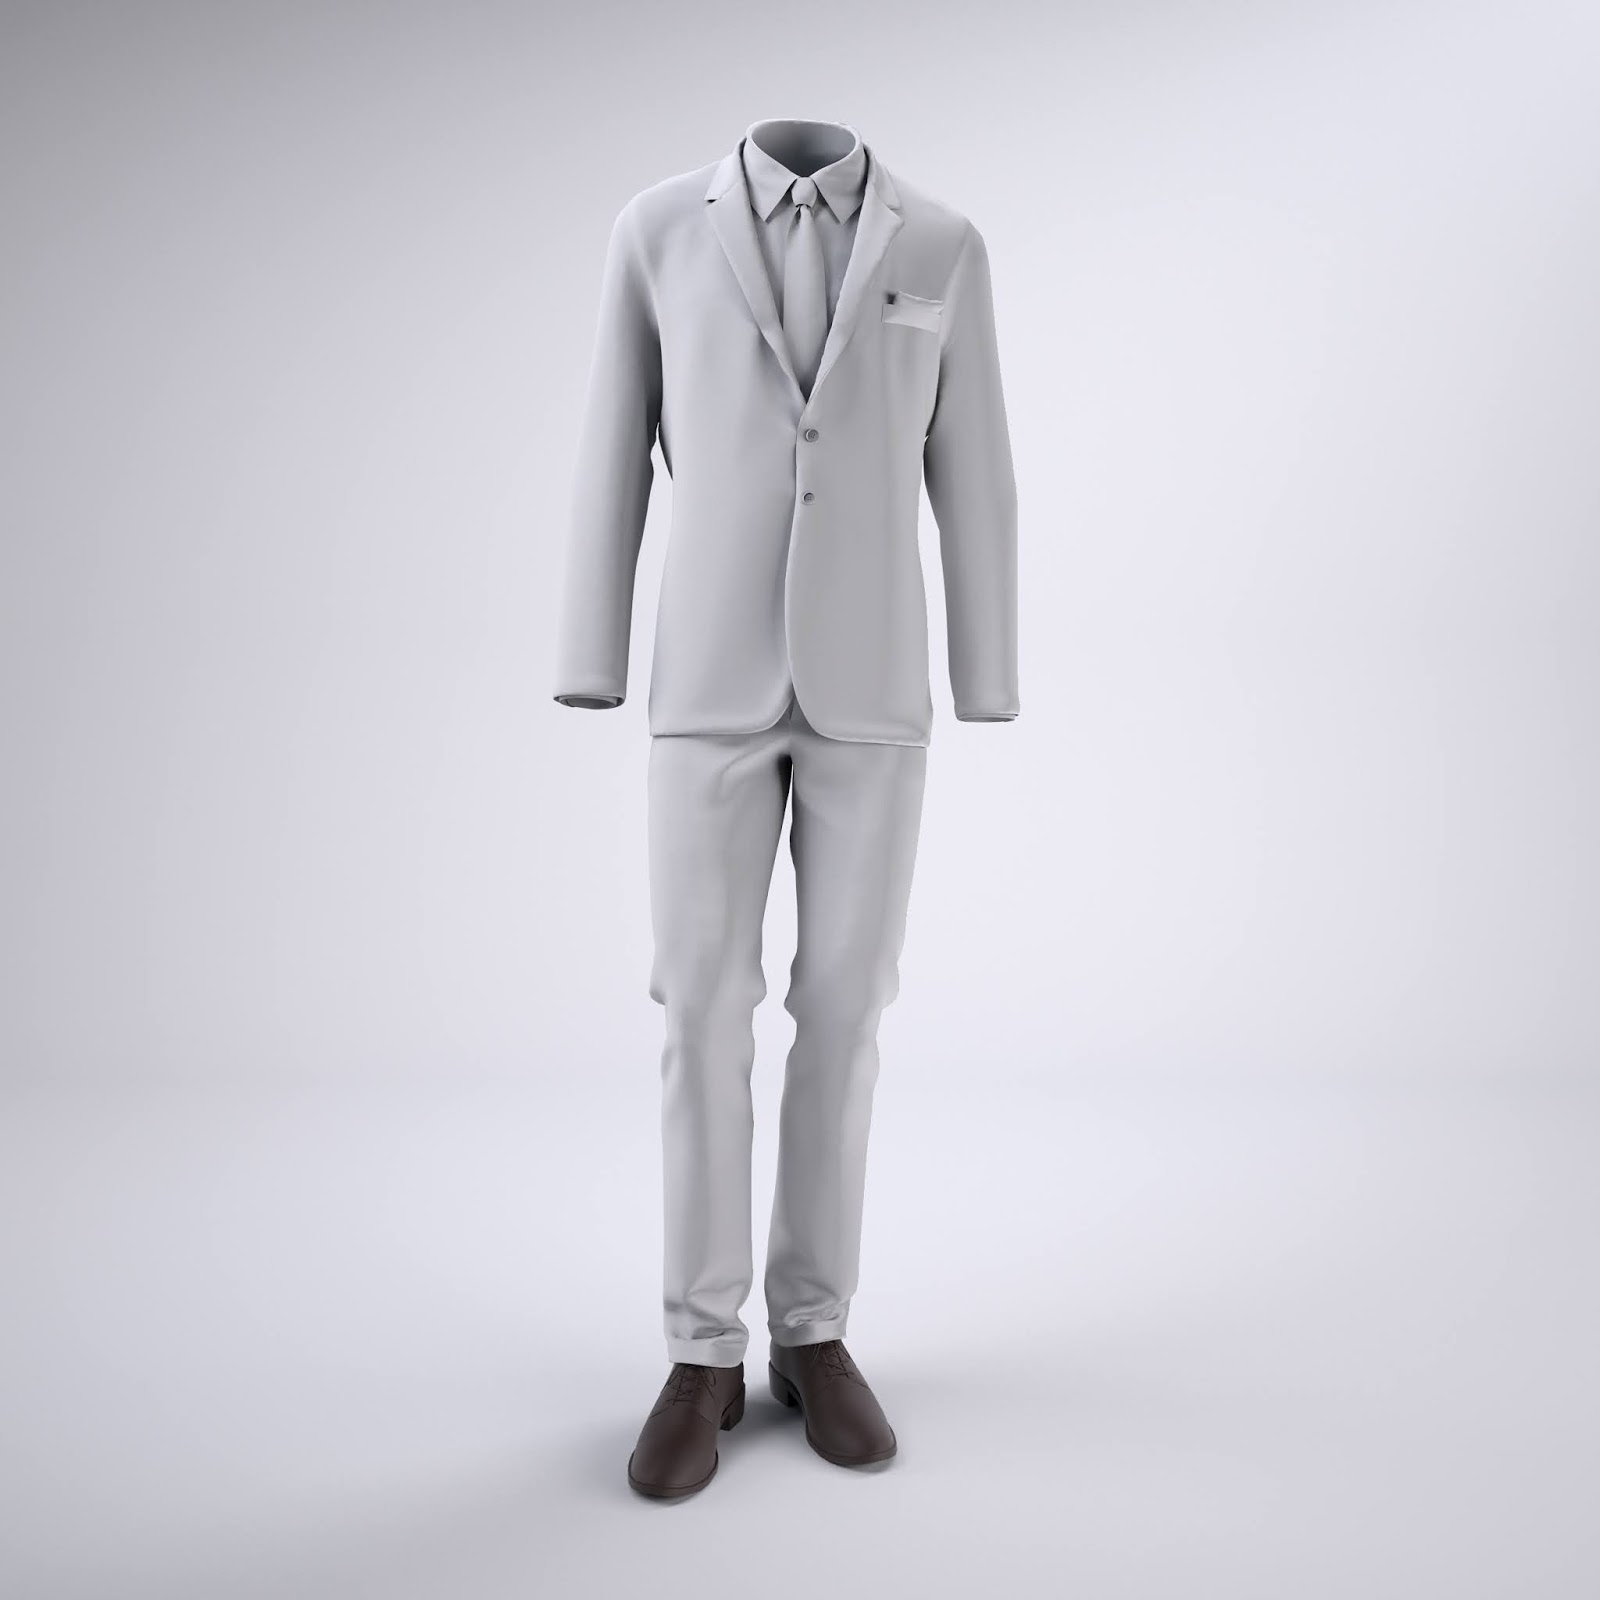 Download a mockup to display the clothes of the suits in more than one form and position of professional designs with high quality